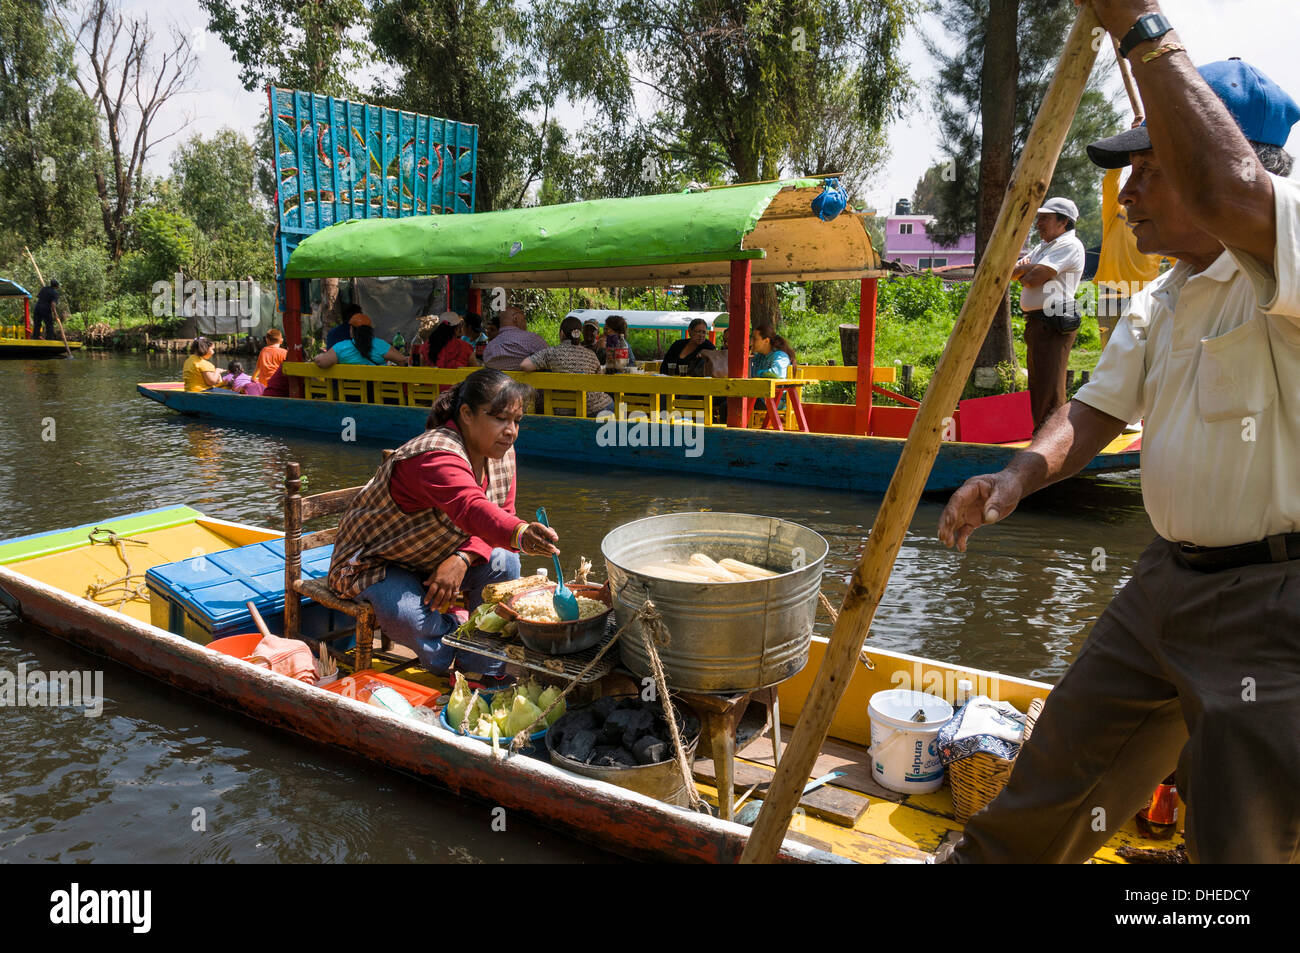 Floating Gardens Of Xochimilco Stock Photos & Floating Gardens Of ...